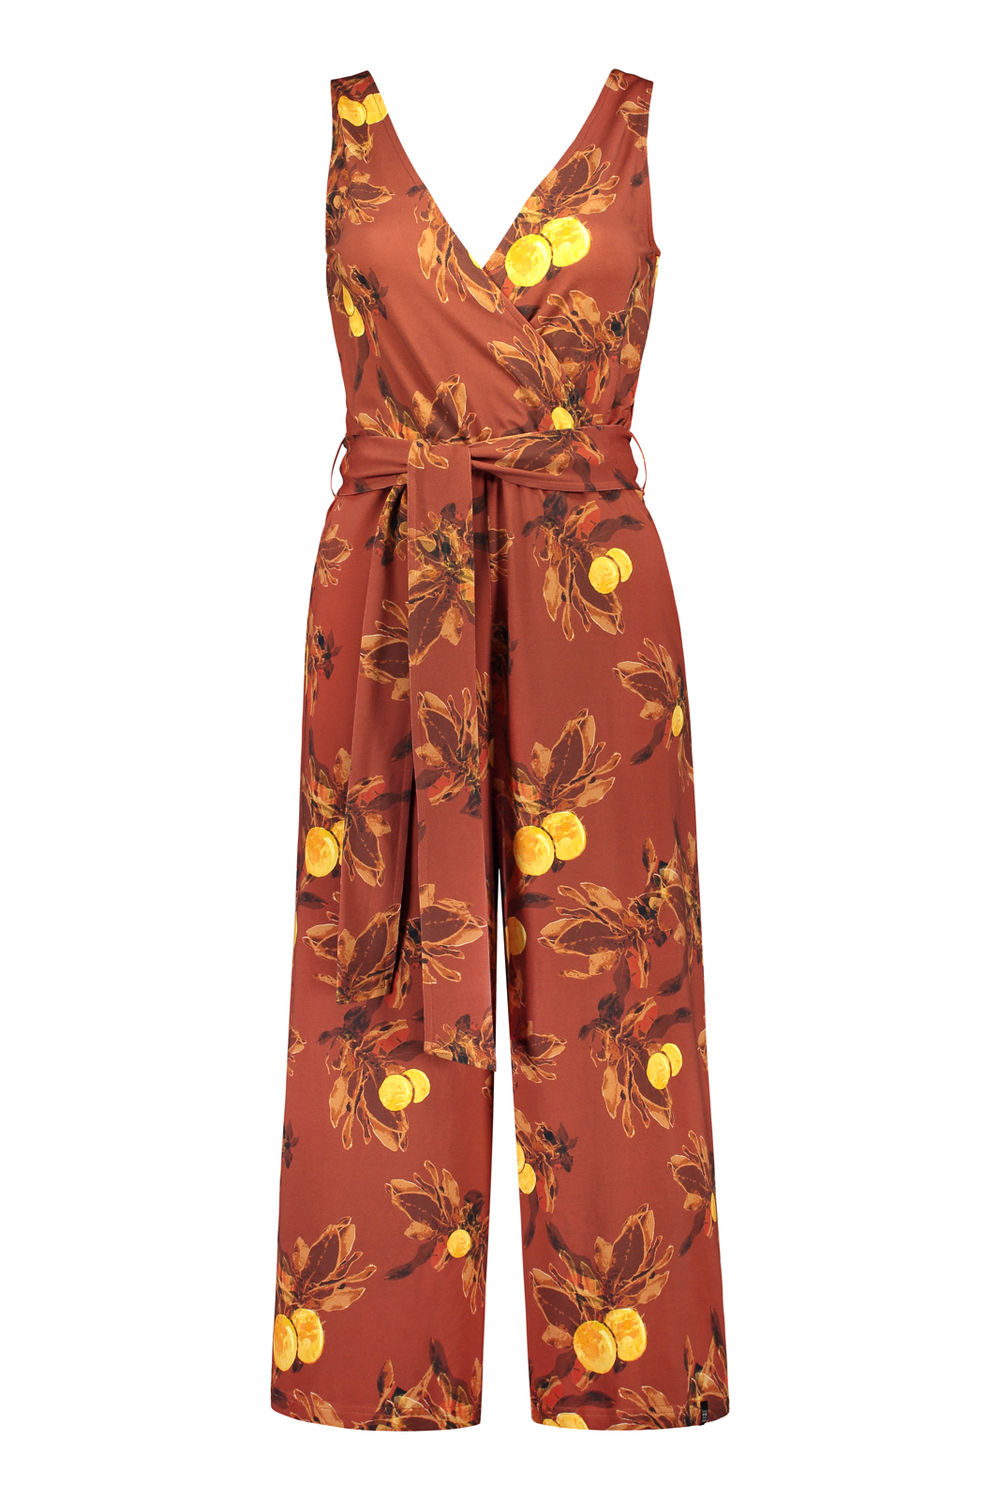 KAIKO WOMEN JUMPSUIT, AMBER ORANGE